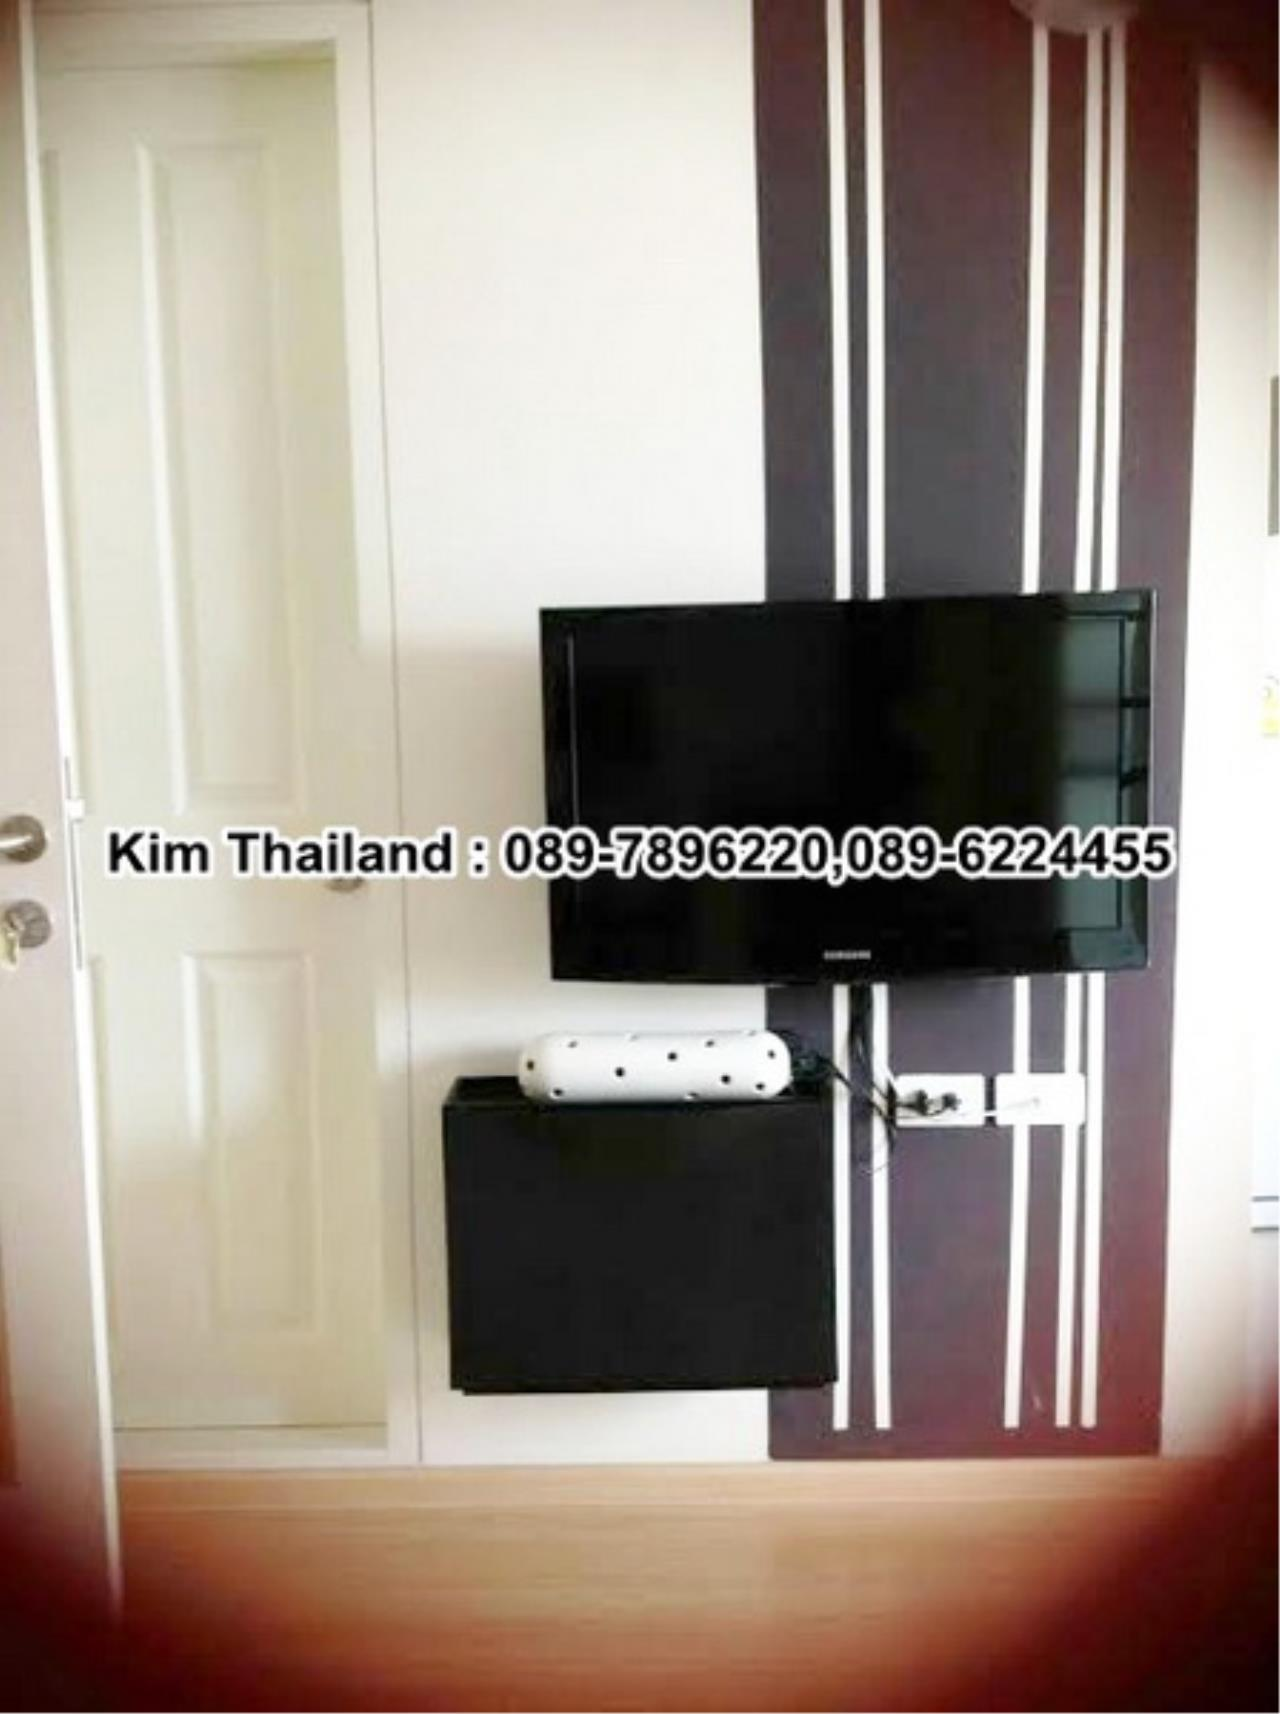 BKKcondorental Agency's For rent, Condo U Delight @ Bang Sue Station., Area 27 sq.m. 1 bedroom.Rental price 8000 THB per month. 2